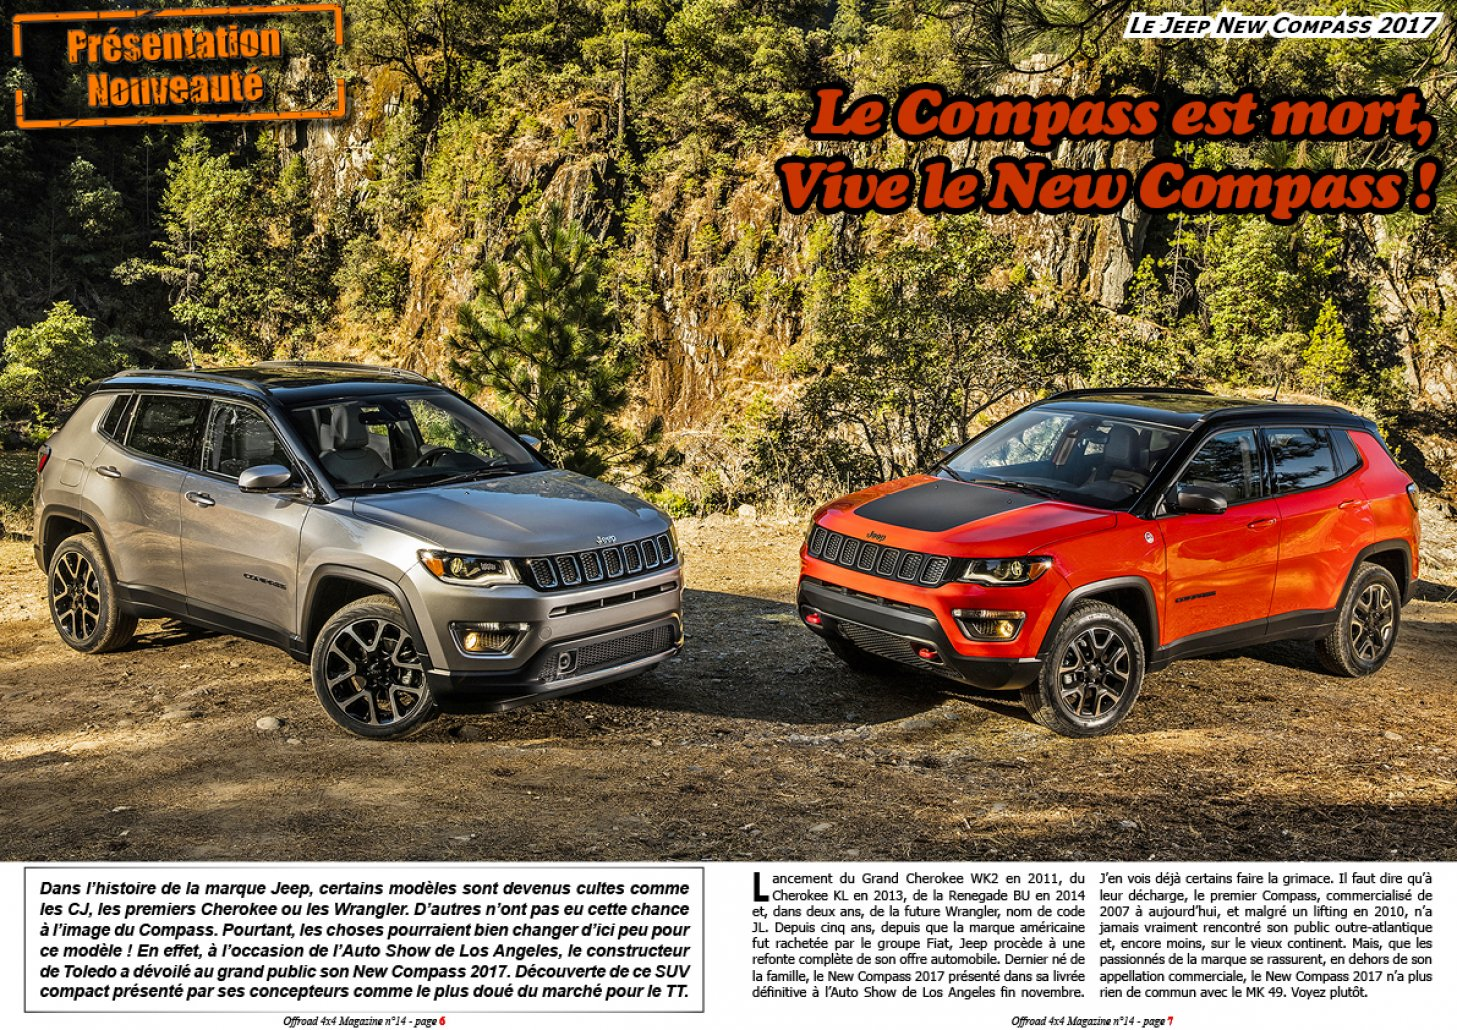 Le Jeep New Compass 2017